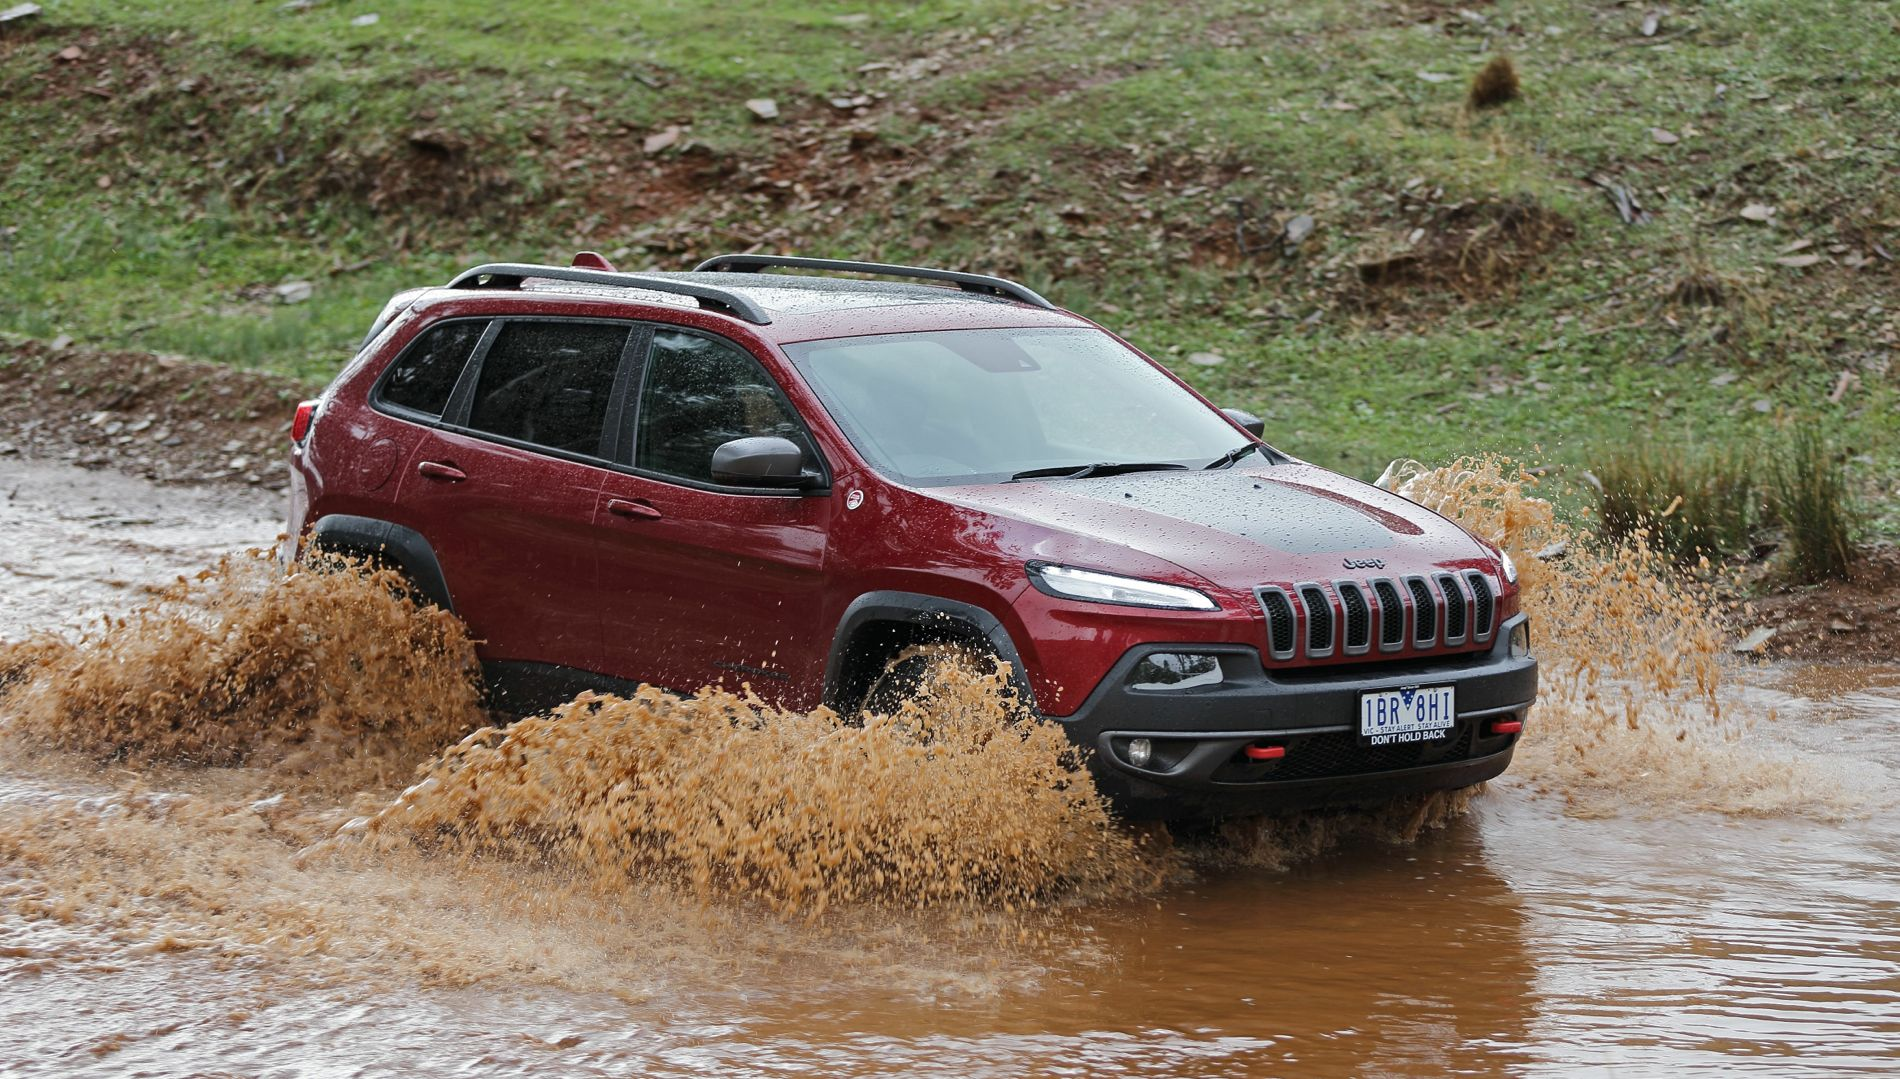 2014 Jeep Cherokee Trailhawk Review: Off-road - Photos